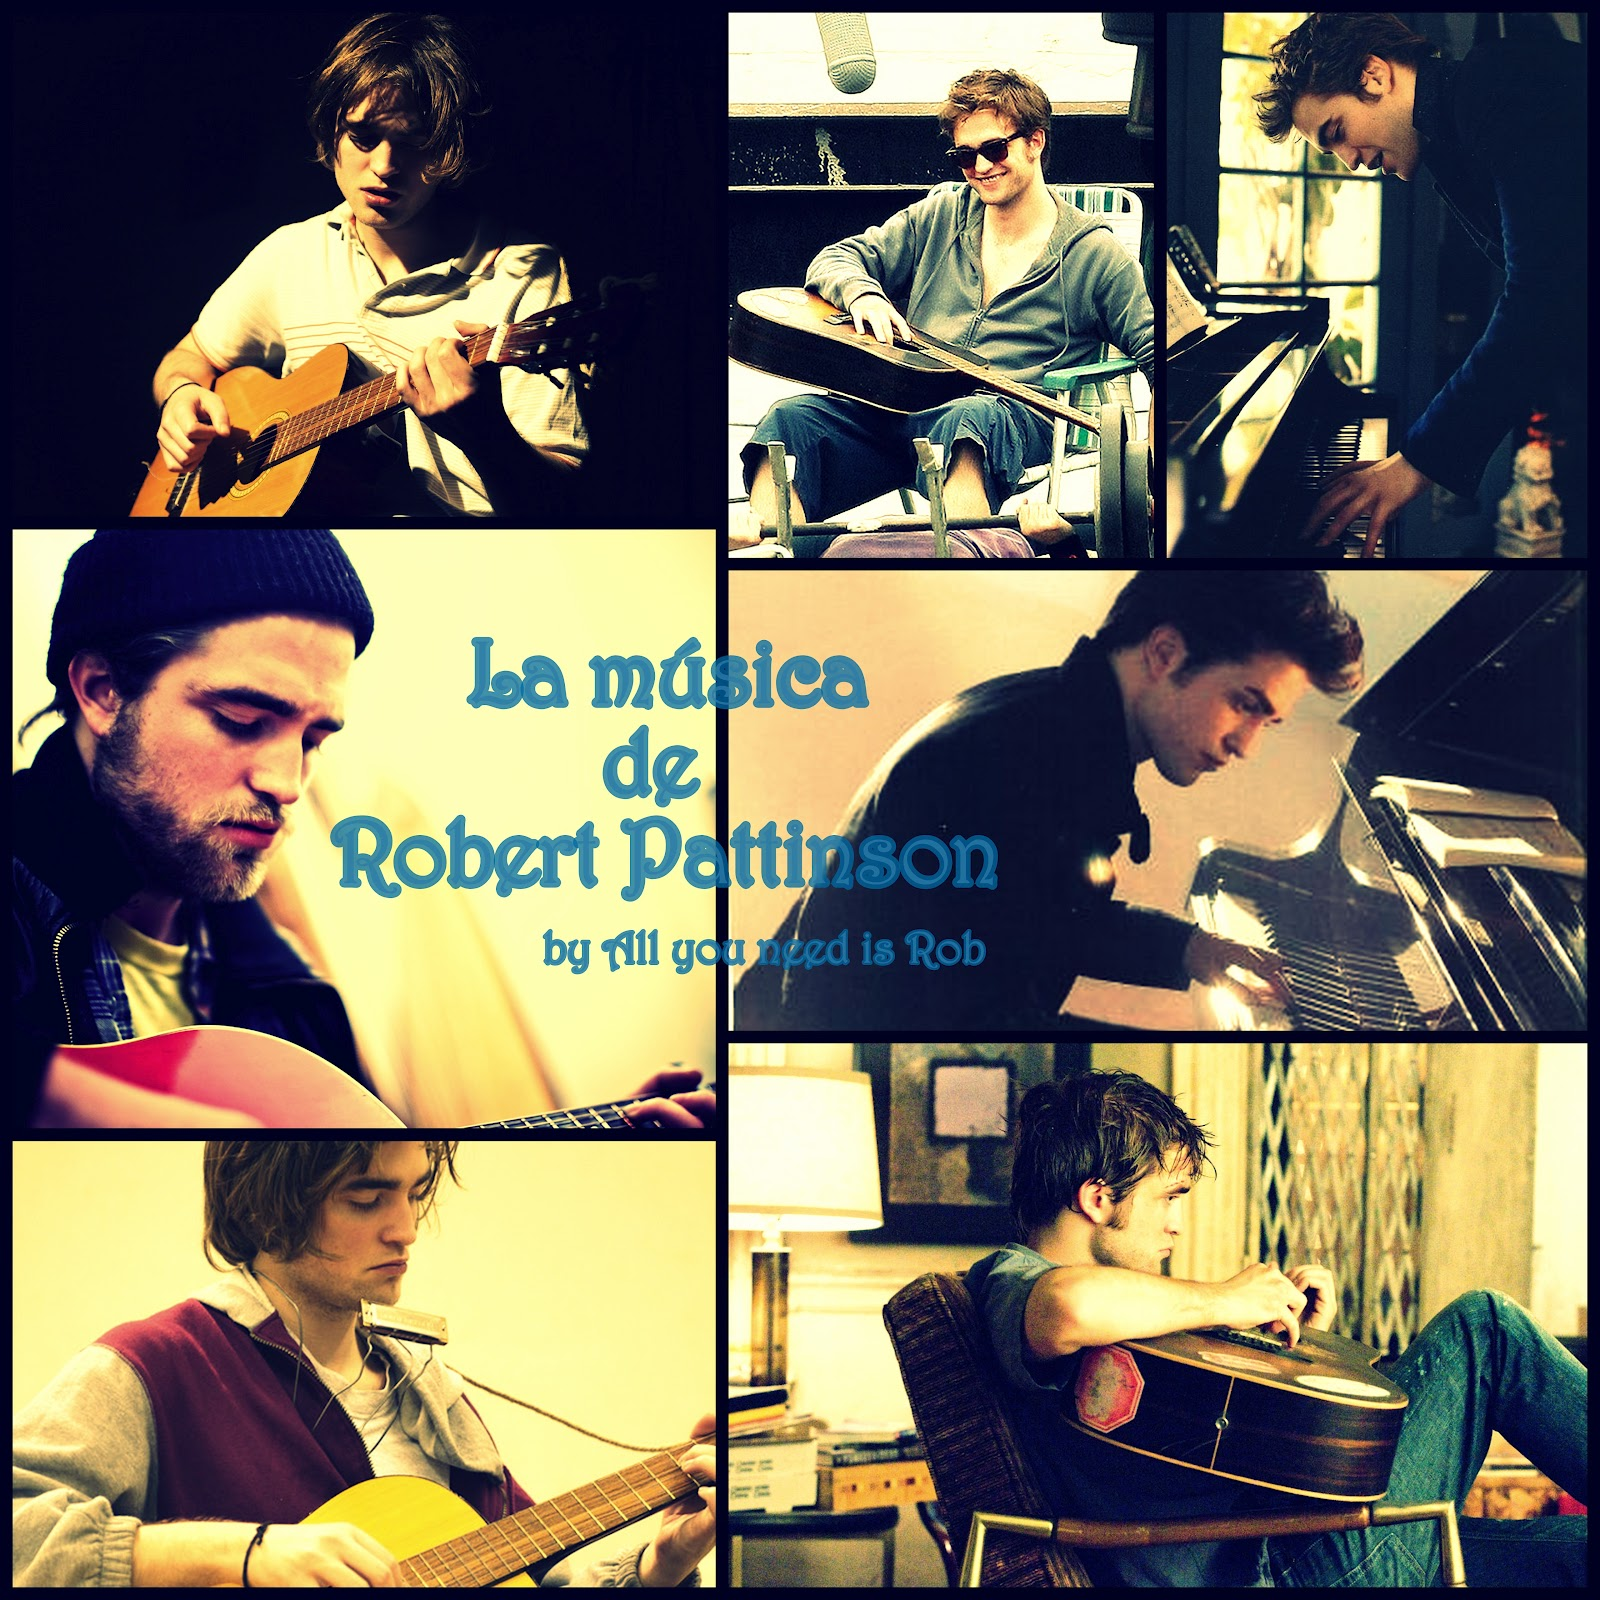 http://2.bp.blogspot.com/-j8ueib9hWfw/T91Y3PwO7HI/AAAAAAAAG5U/7awqAAVCuHQ/s1600/Robert+Pattinson+M%C3%BAsica+by+All+You+Need+Is+Rob.jpg